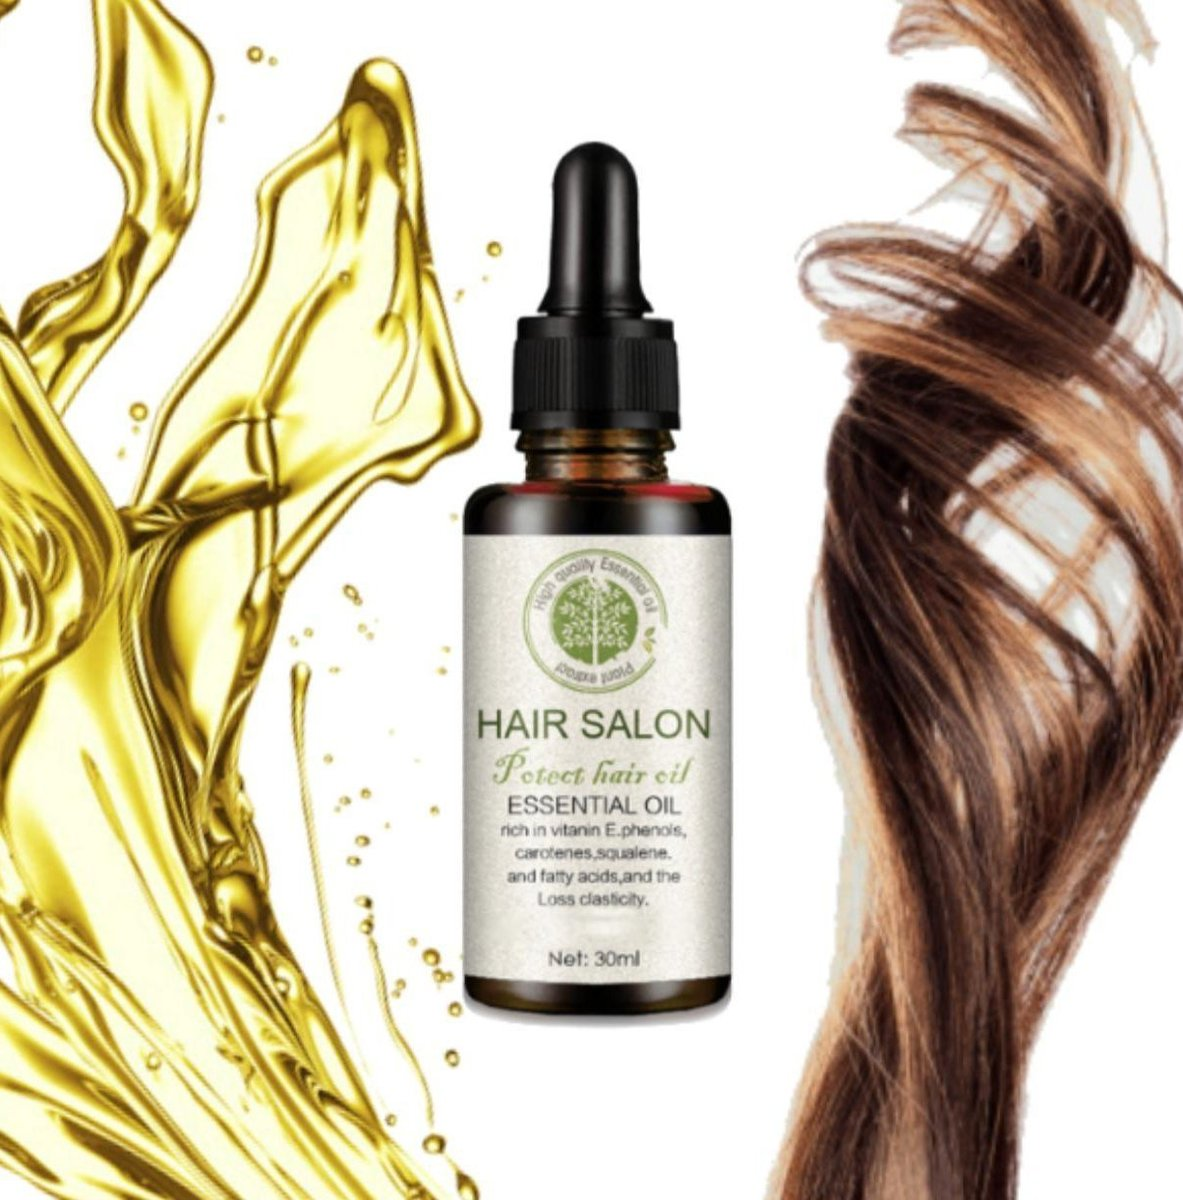 ALL-NATURAL HAIR REGROWTH SERUM - 56% OFF LAST DAY PROMOTION!